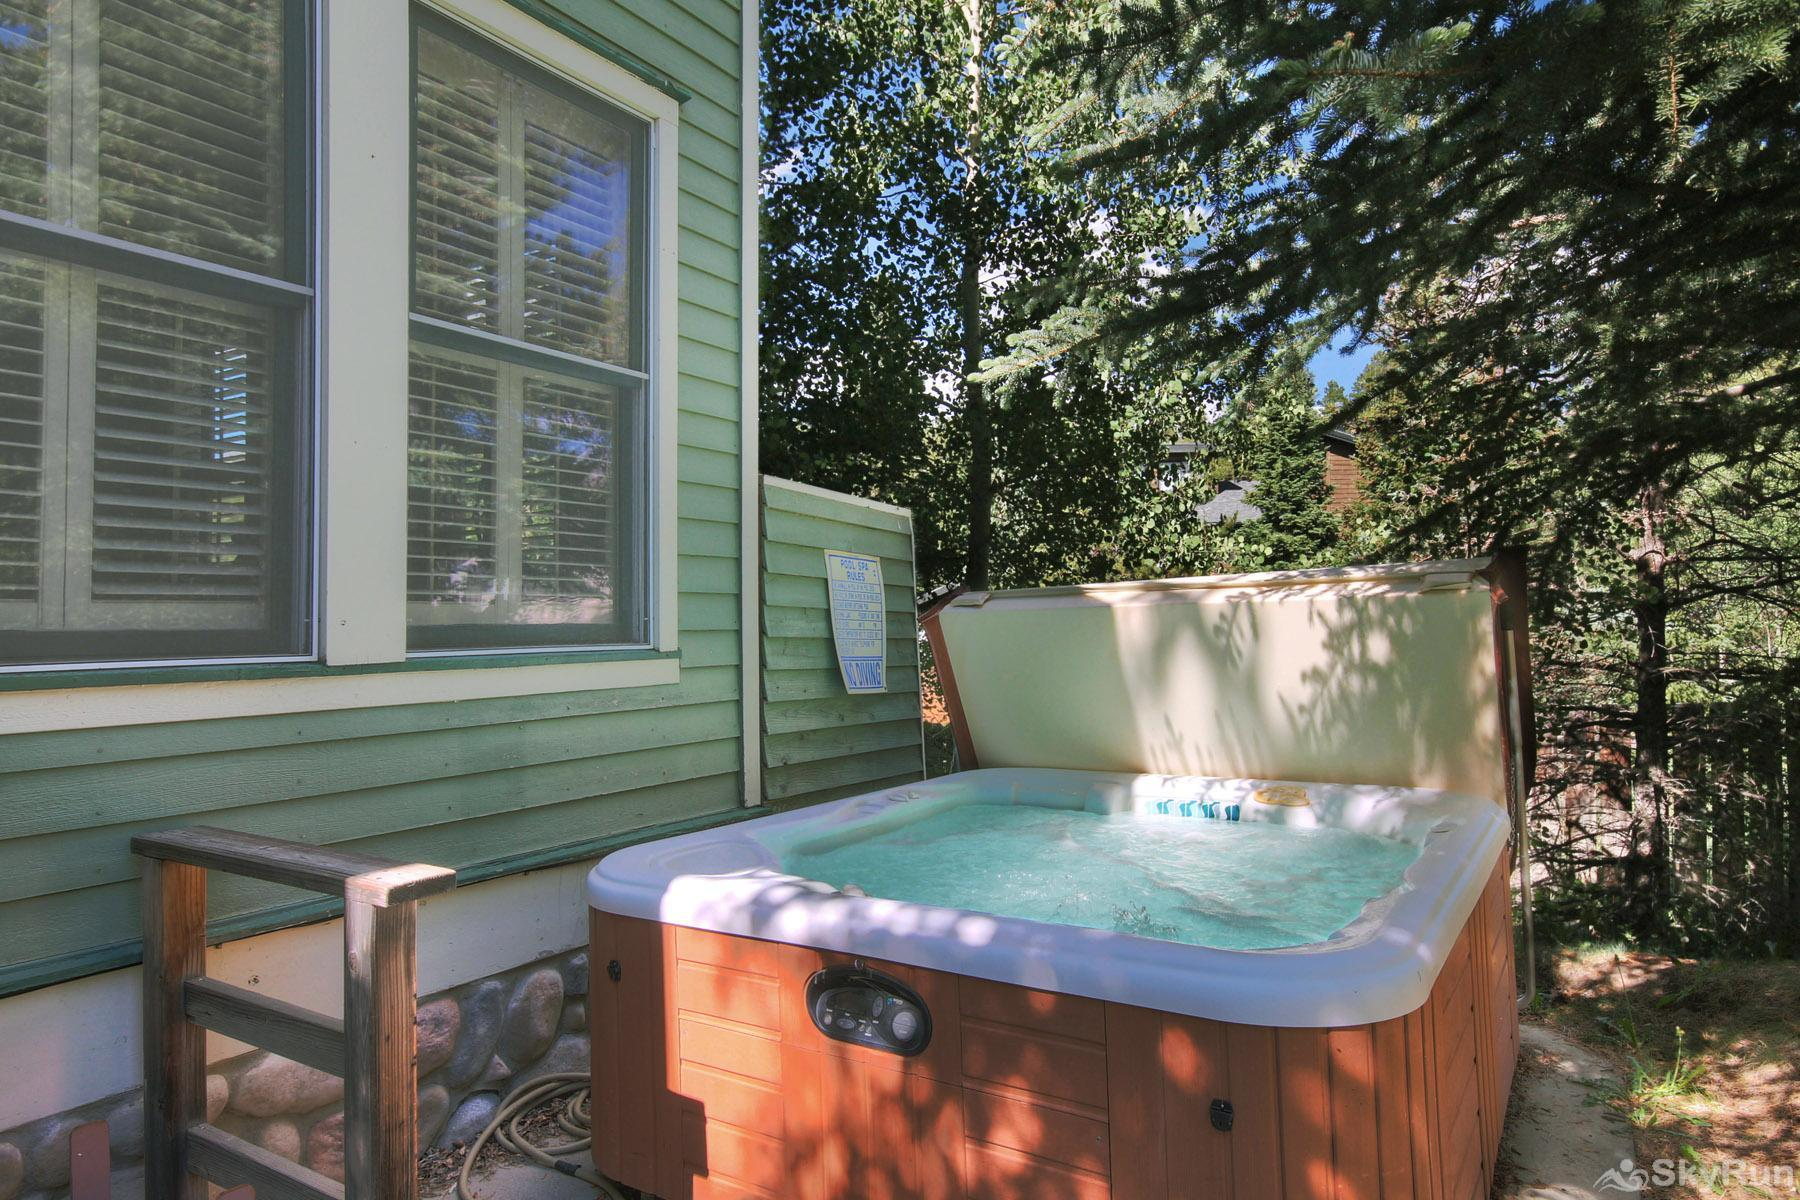 Bear Pine Chalet Relax and unwind in your private outdoor hot tub